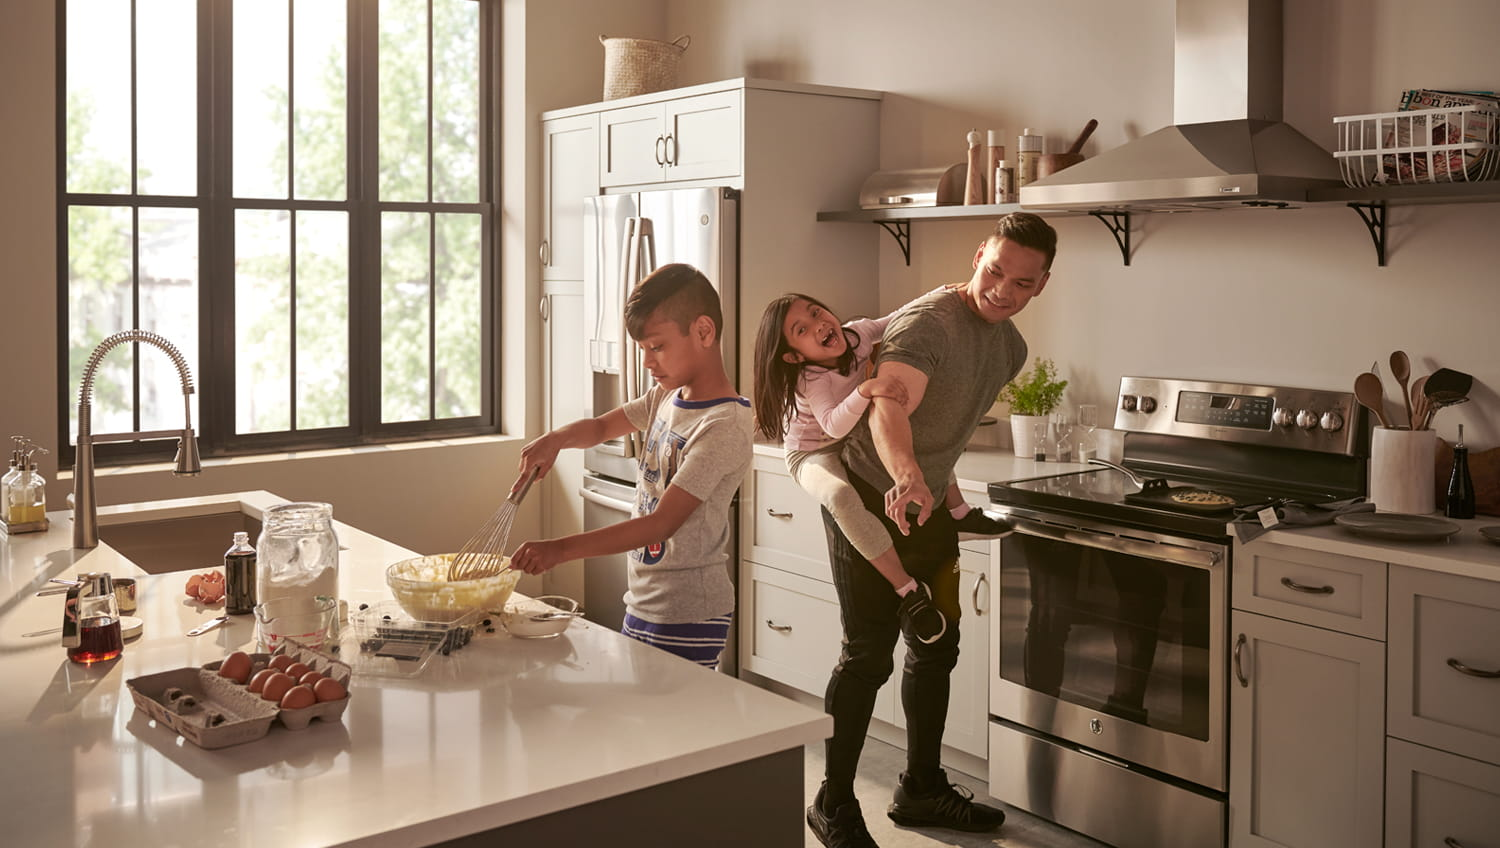 Edgewater Kitchen Faucet in Kitchen with Family Cooking